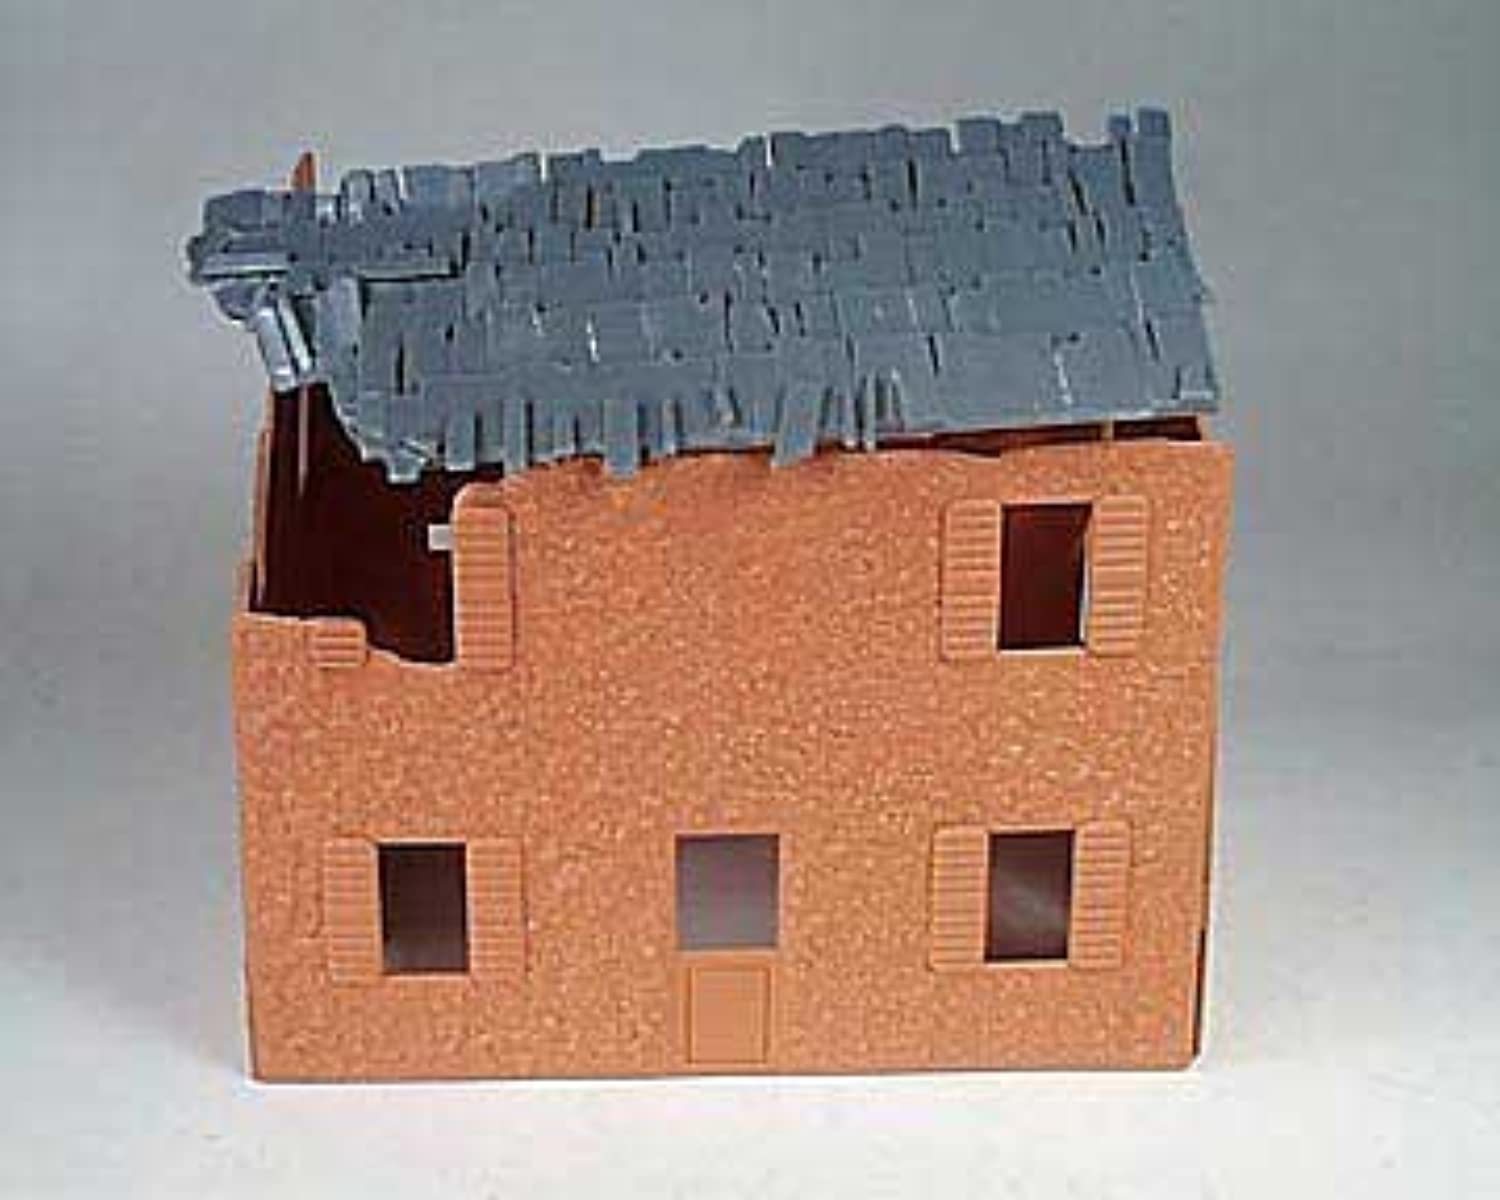 BMC Toys Diorama Accessories  Bombed French Farm House 1 32 Scale for 54mm Plastic Army Men by BMC